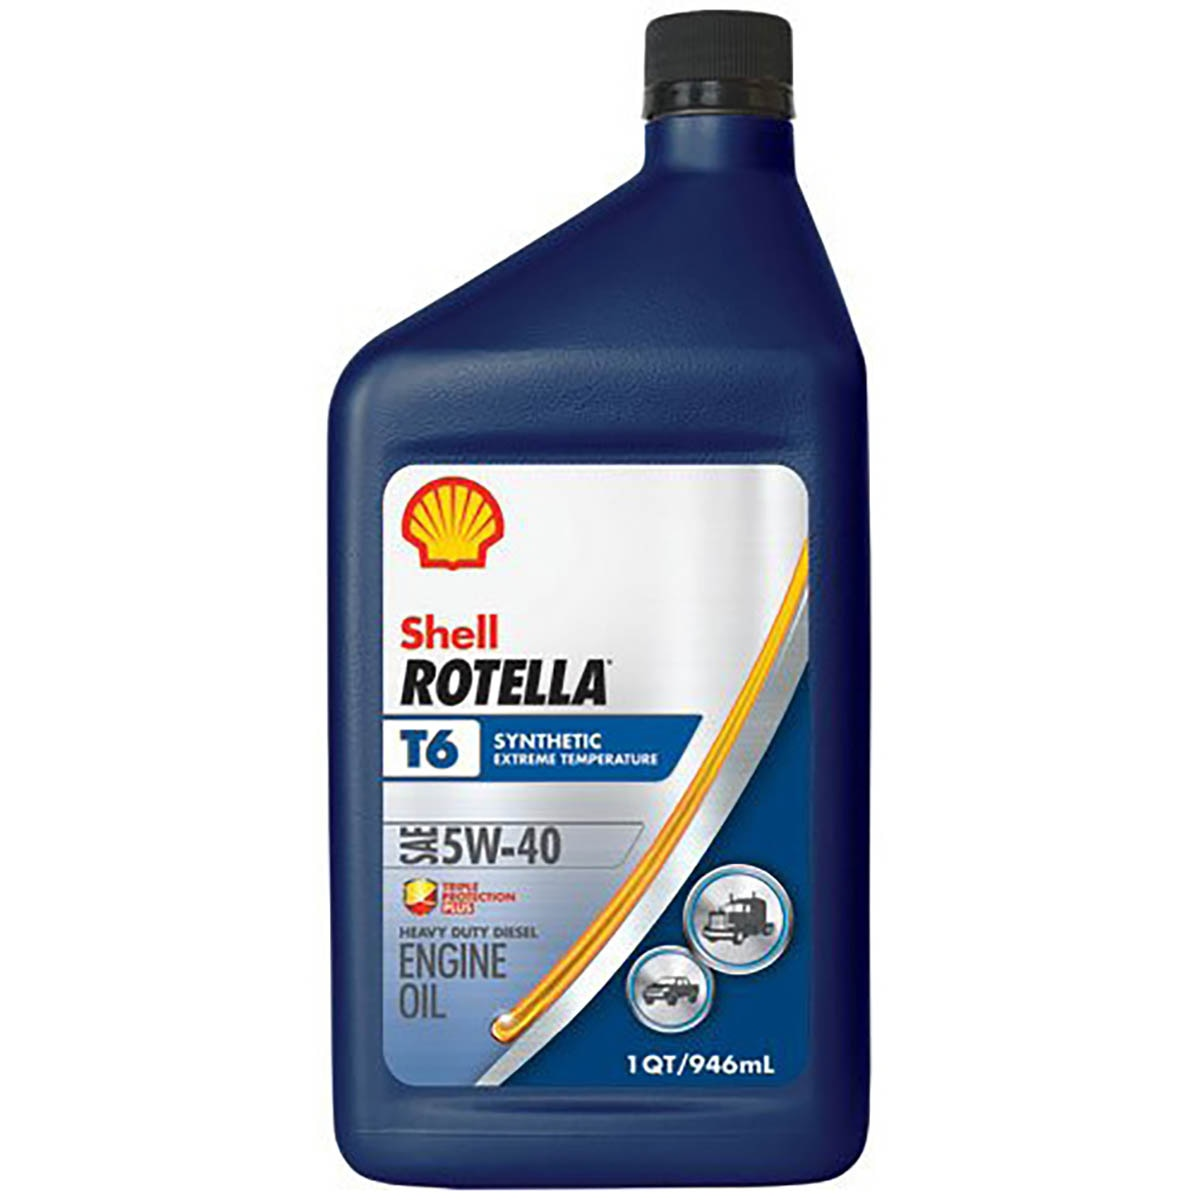 Motor Oil Rotella T6 Energized Protection 5W-40 Shell